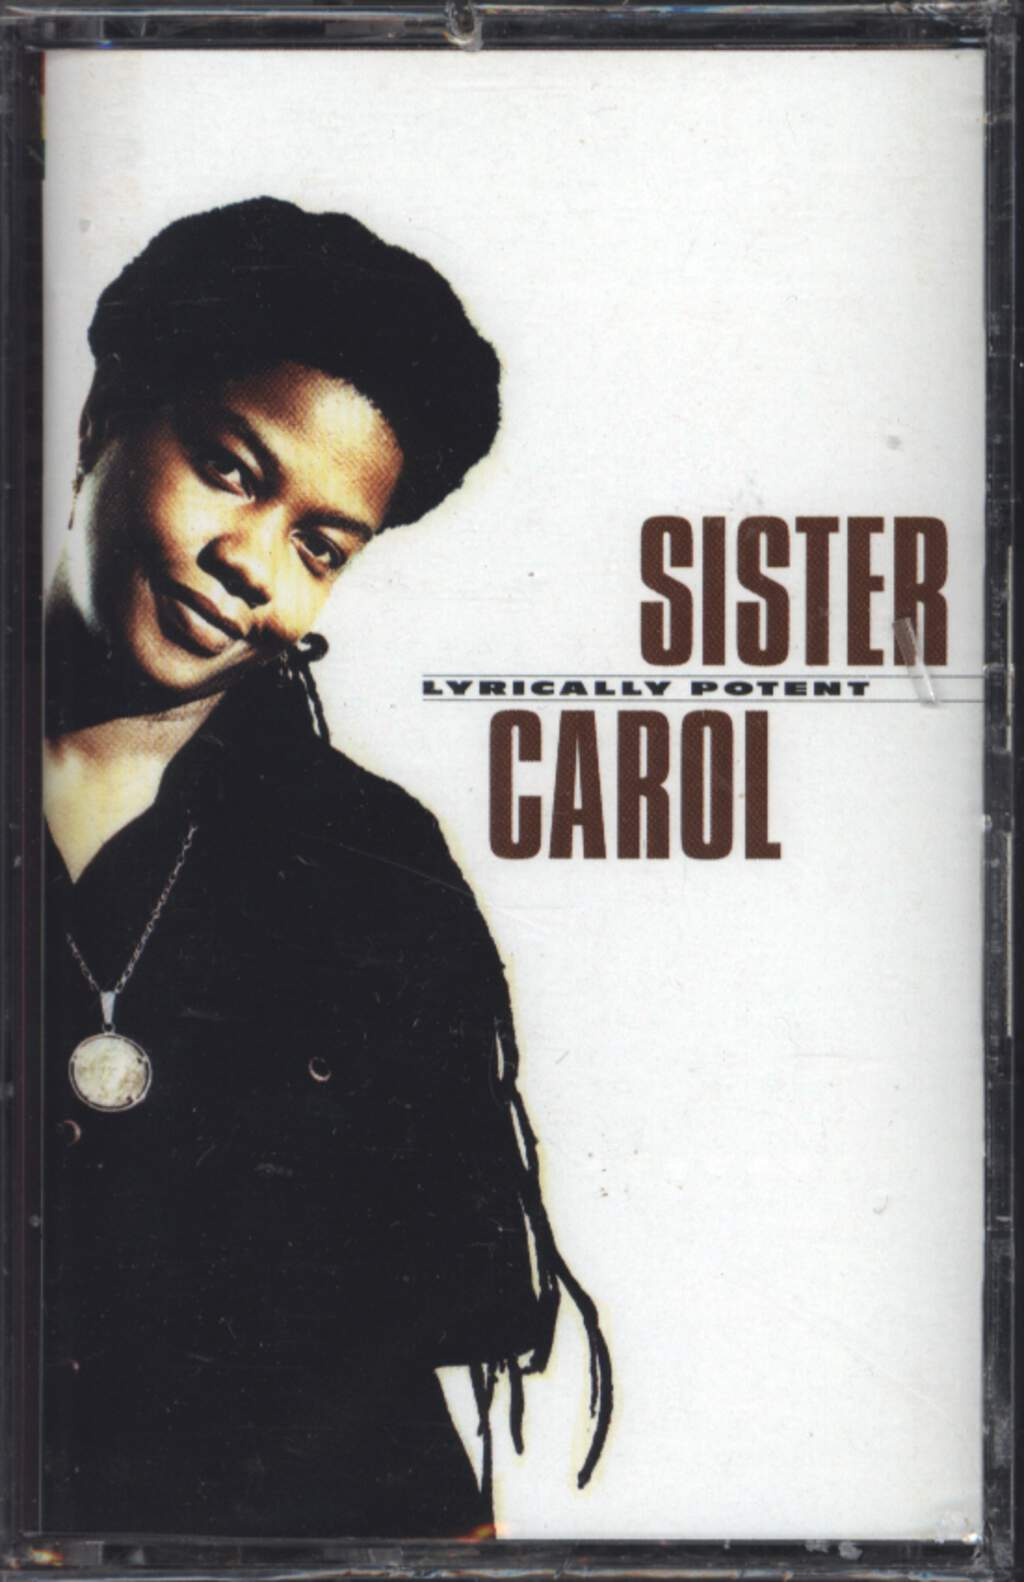 Sister Carol: Lyrically Potent, Compact Cassette